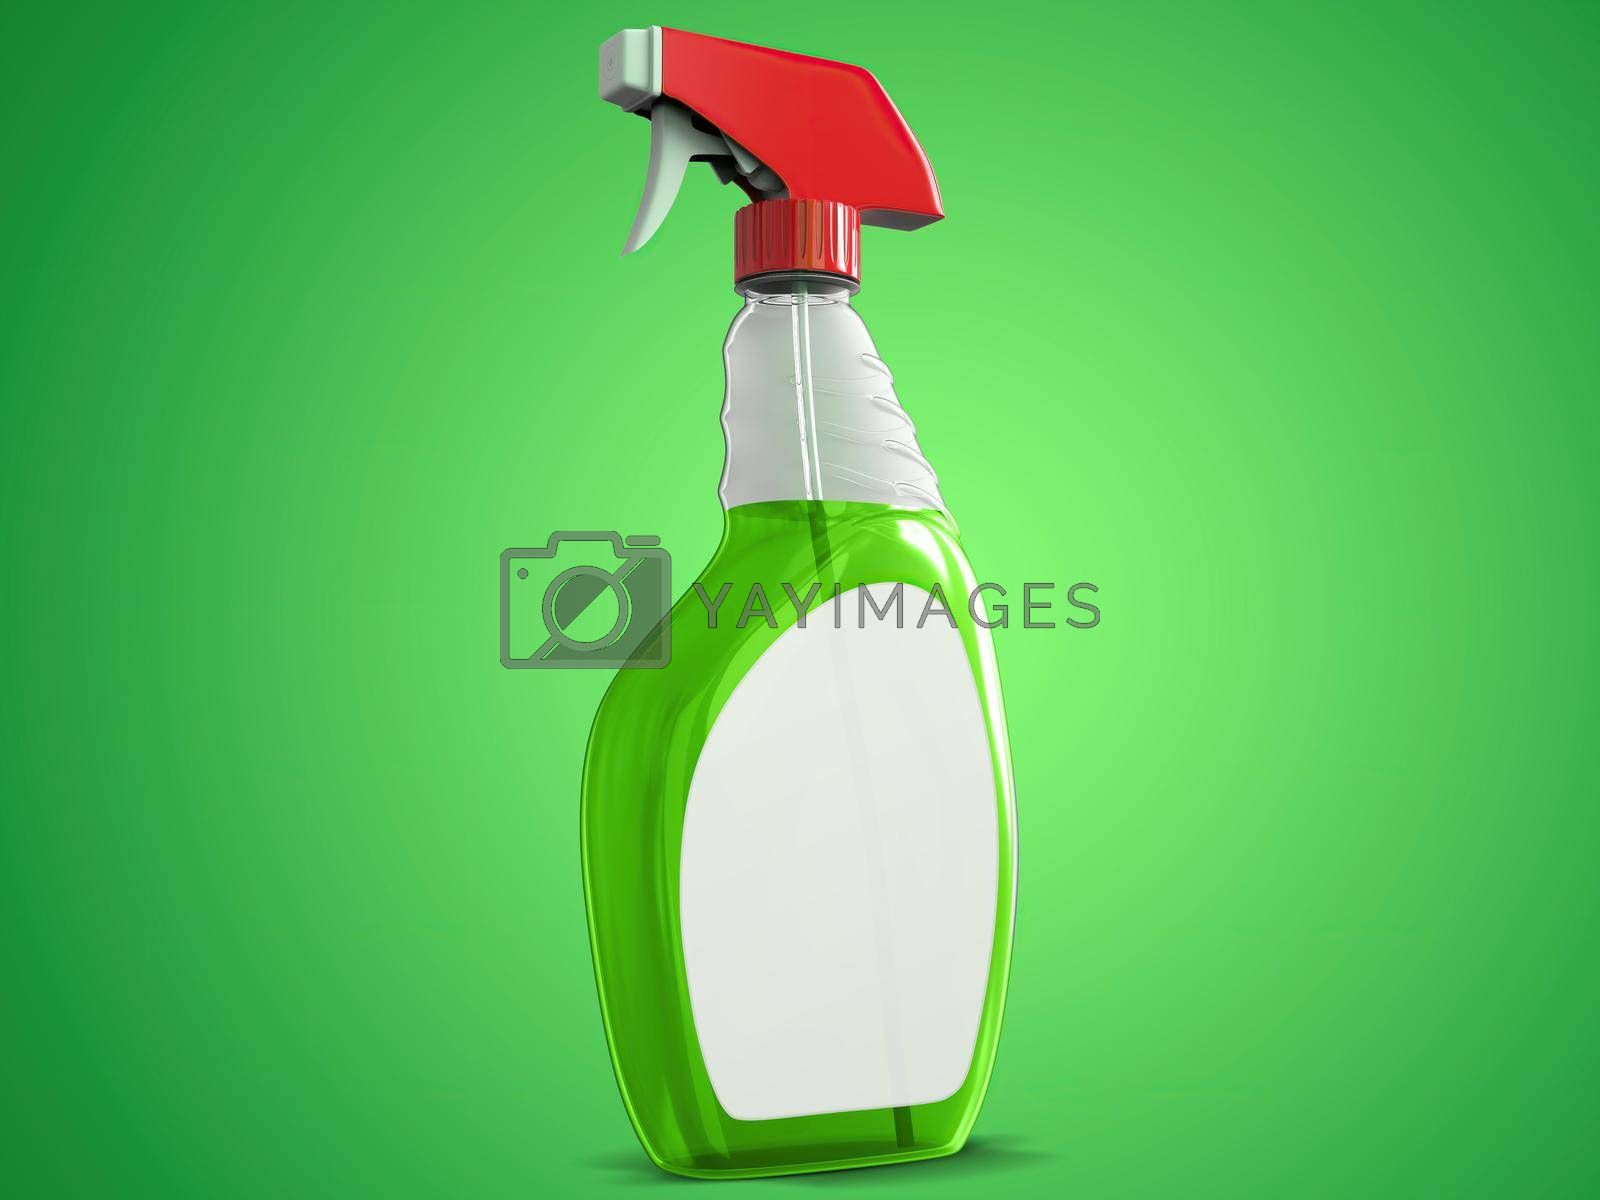 Transparent Cleaning Spray Bottle Mockup Left Perspective View